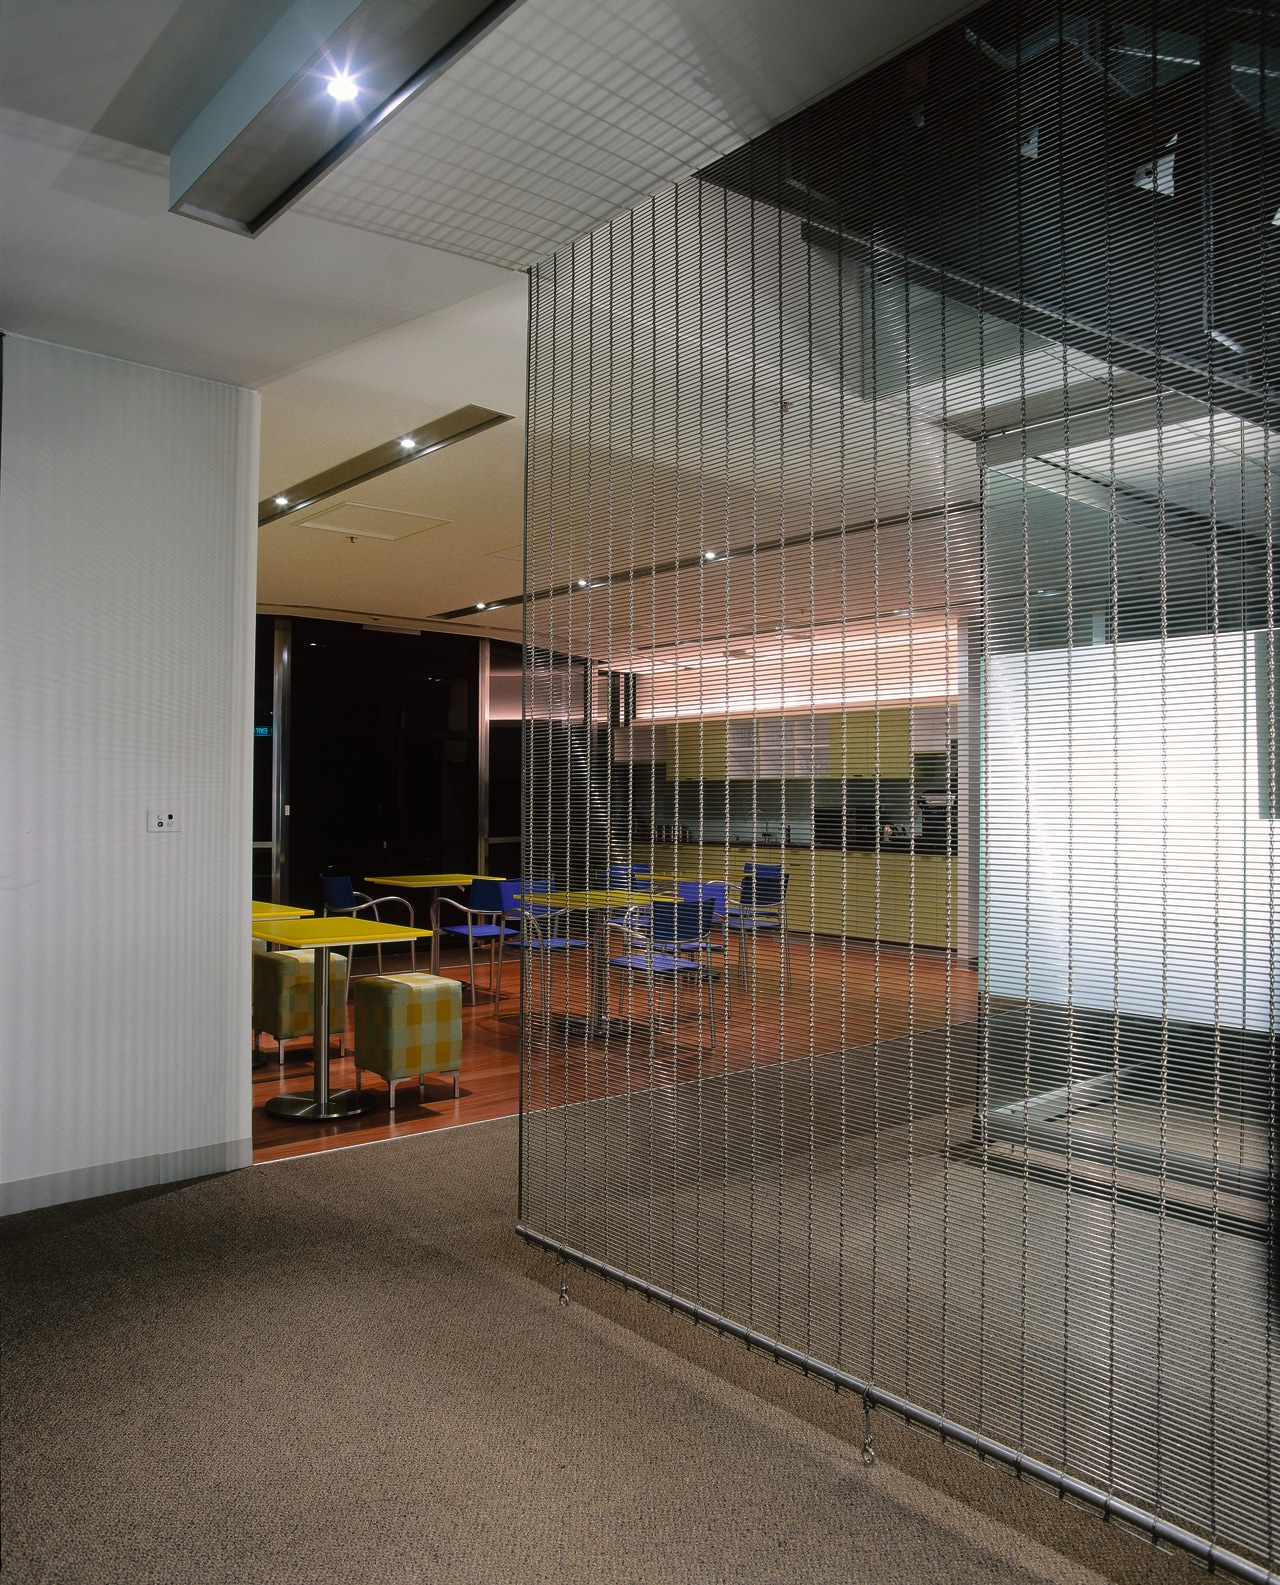 View of a glass panel, polished concrete flooring, architecture, ceiling, daylighting, glass, interior design, gray, black